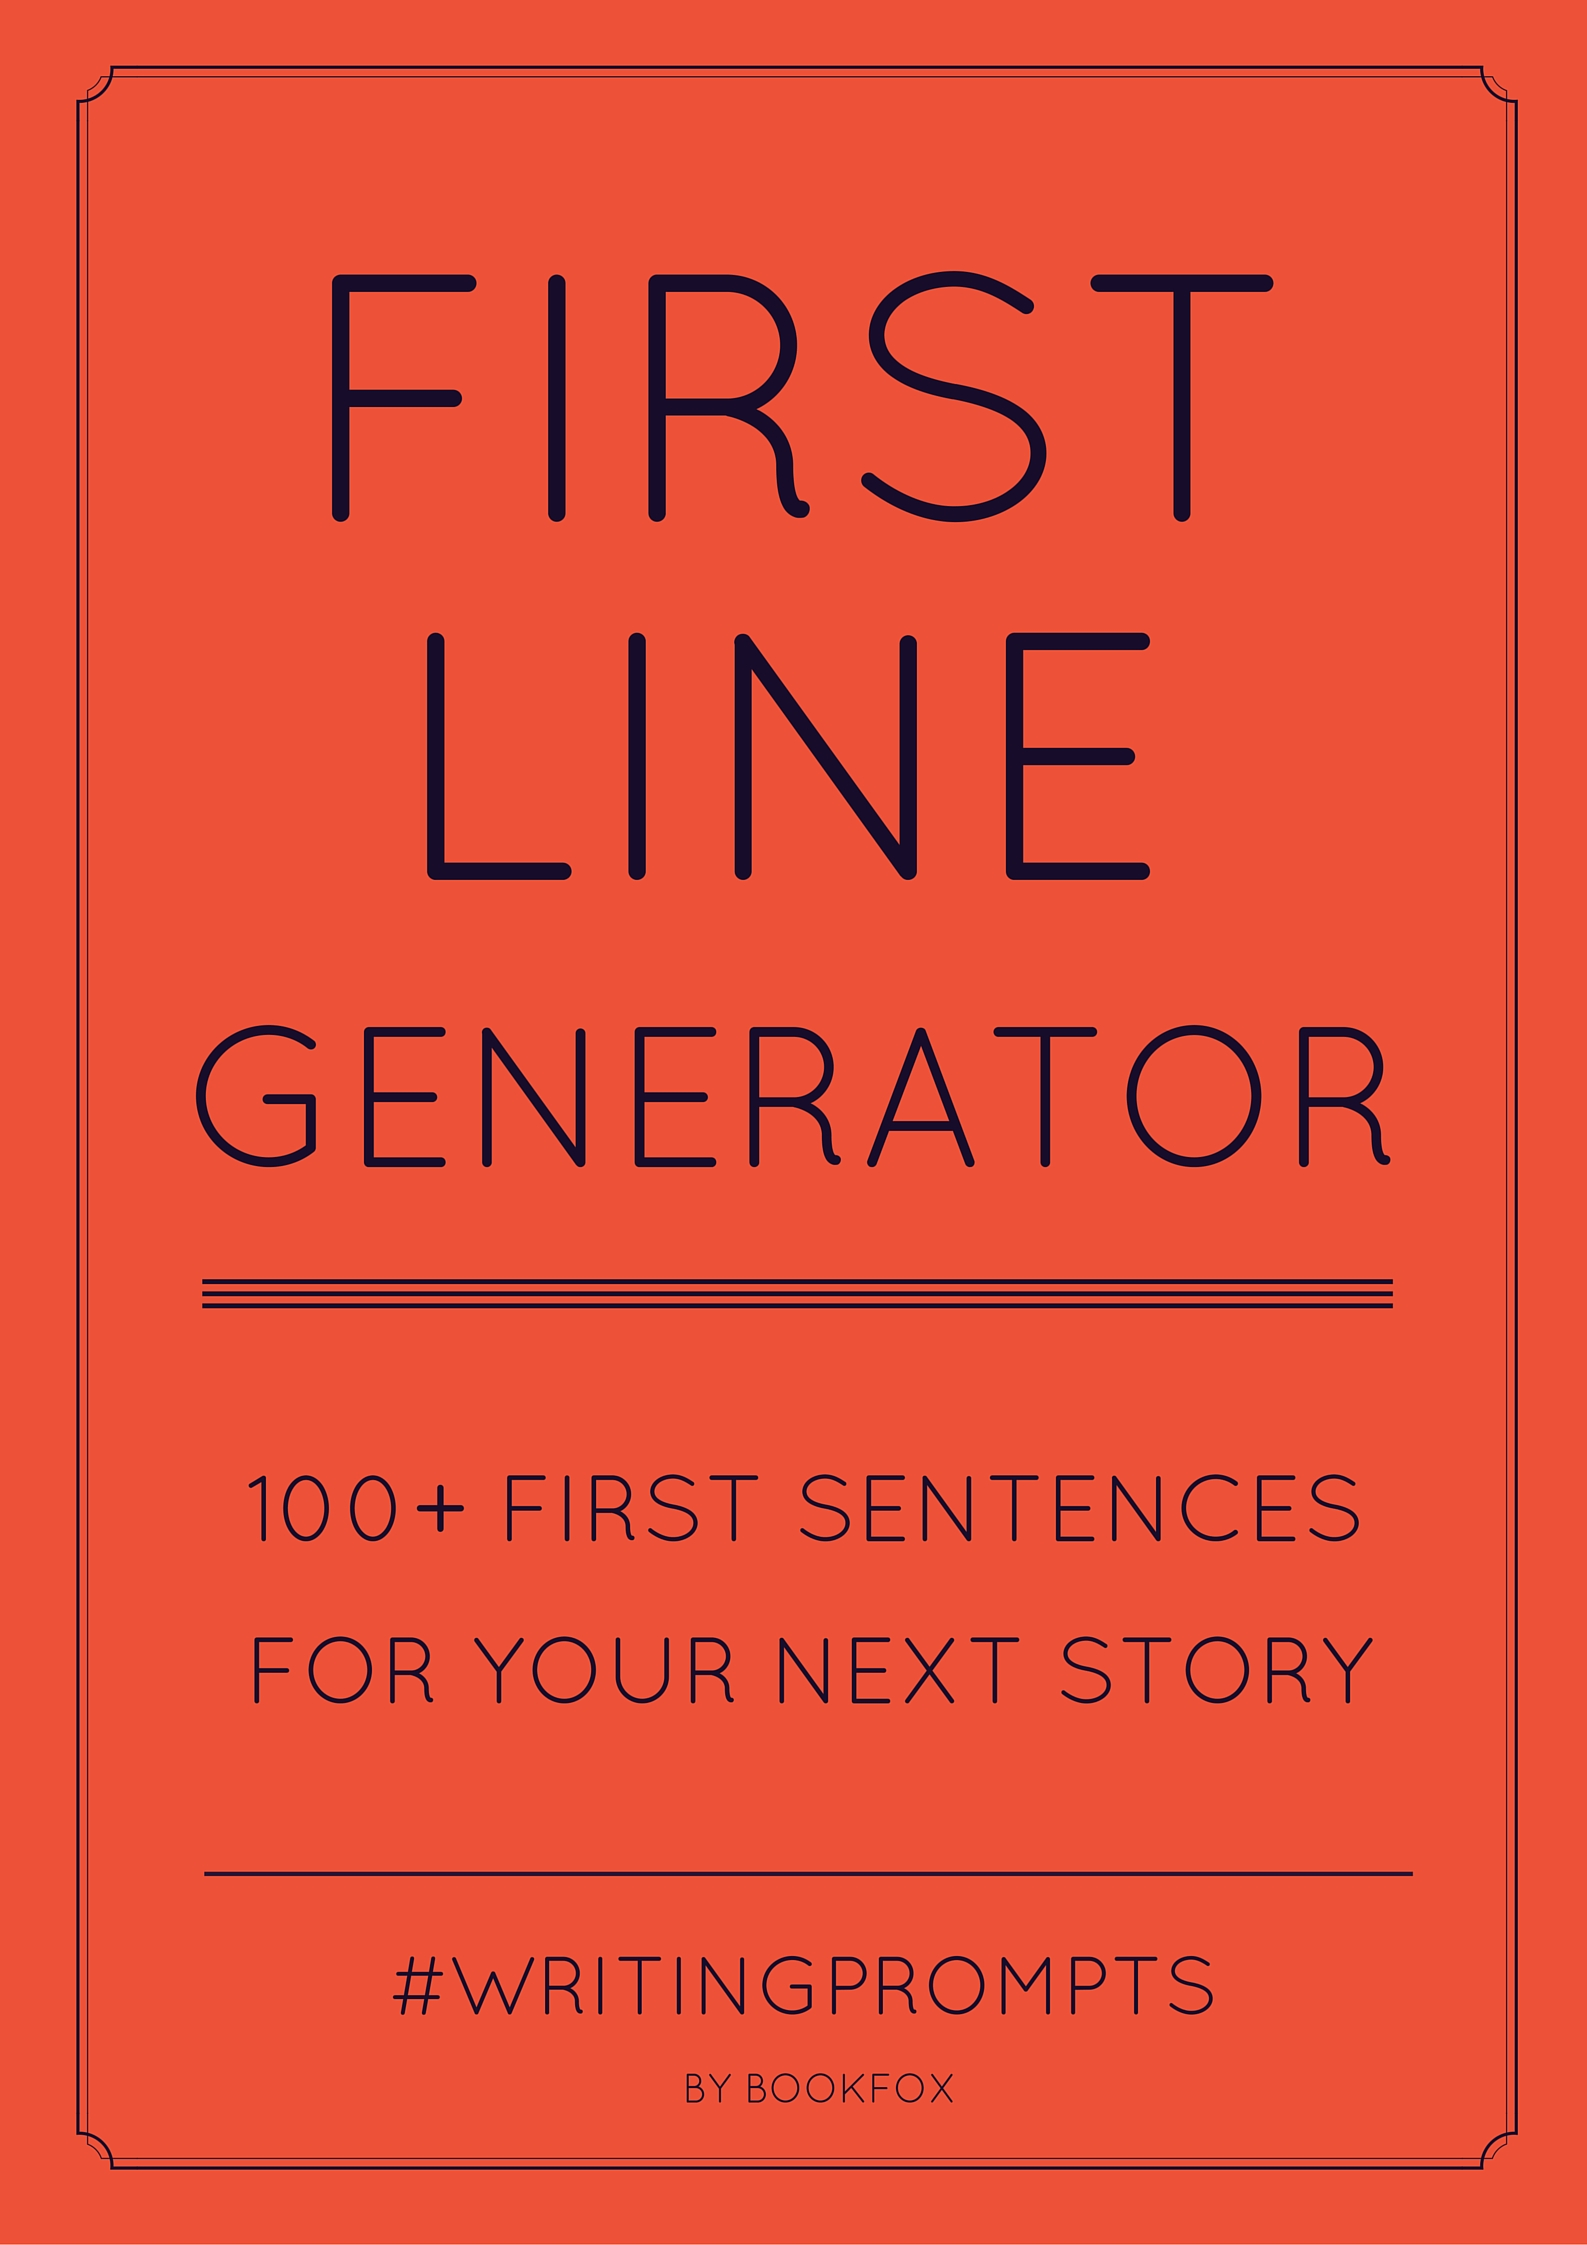 first line generator: 100+ first sentences to spark creativity - bookfox